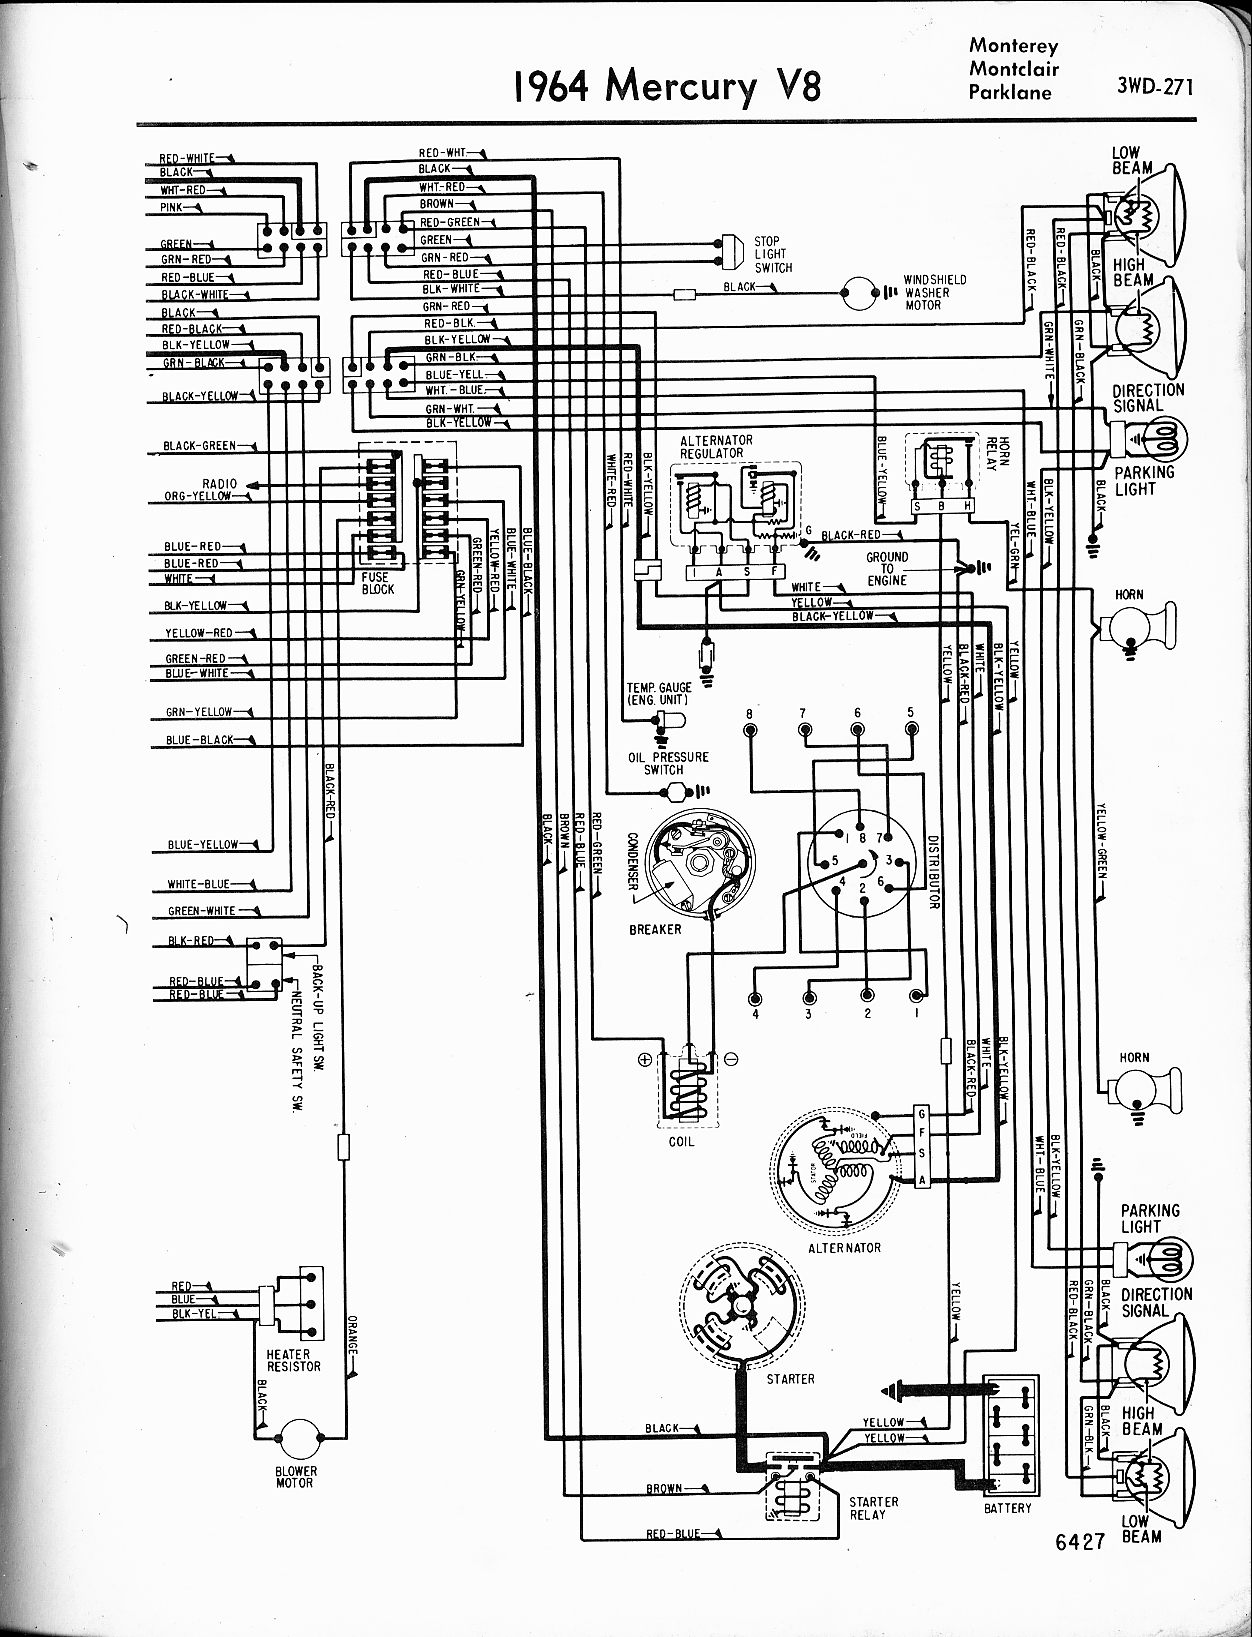 1966 Mercury Montclair Wiring Diagram on 1950 ford car heater